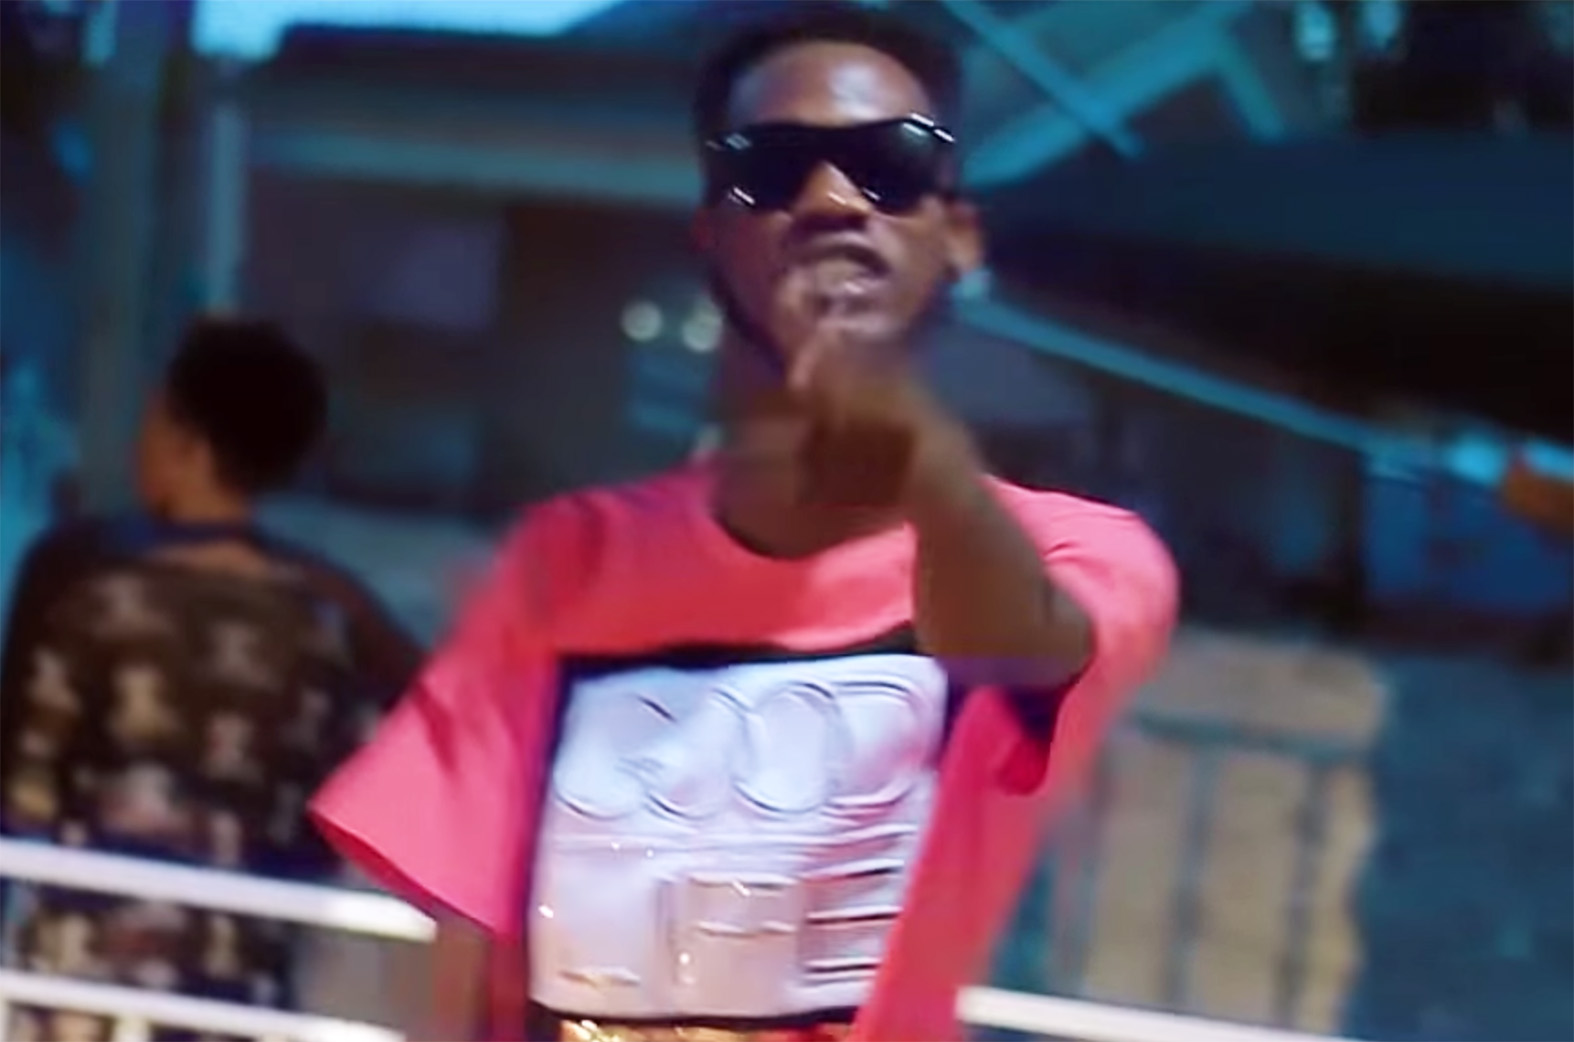 Video: Modeɛ Sɛ Moano by Ypee feat. RC